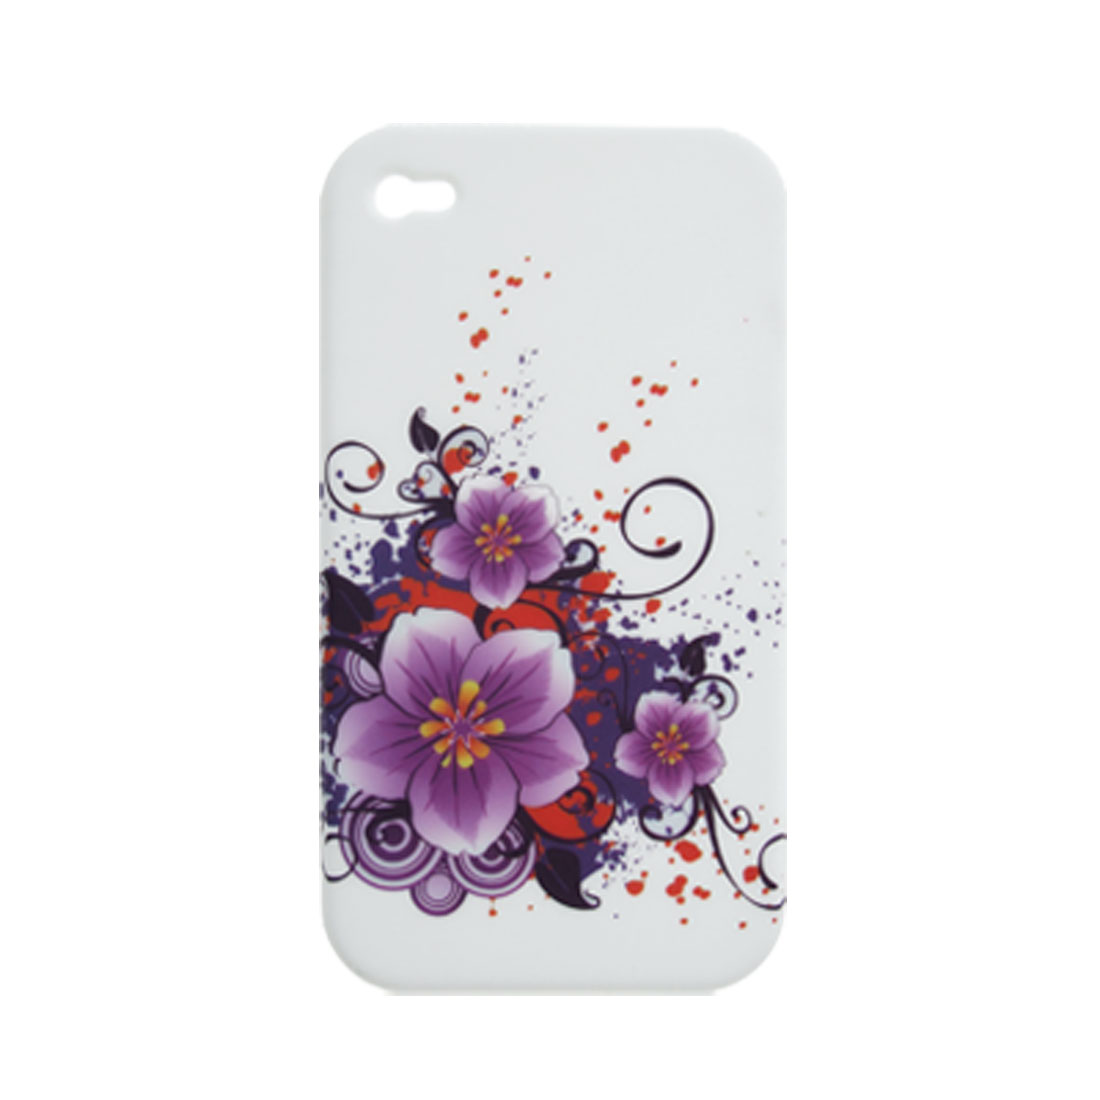 Flower Pattern Textured Inner White Soft Plastic Case for iPhone 4 4G